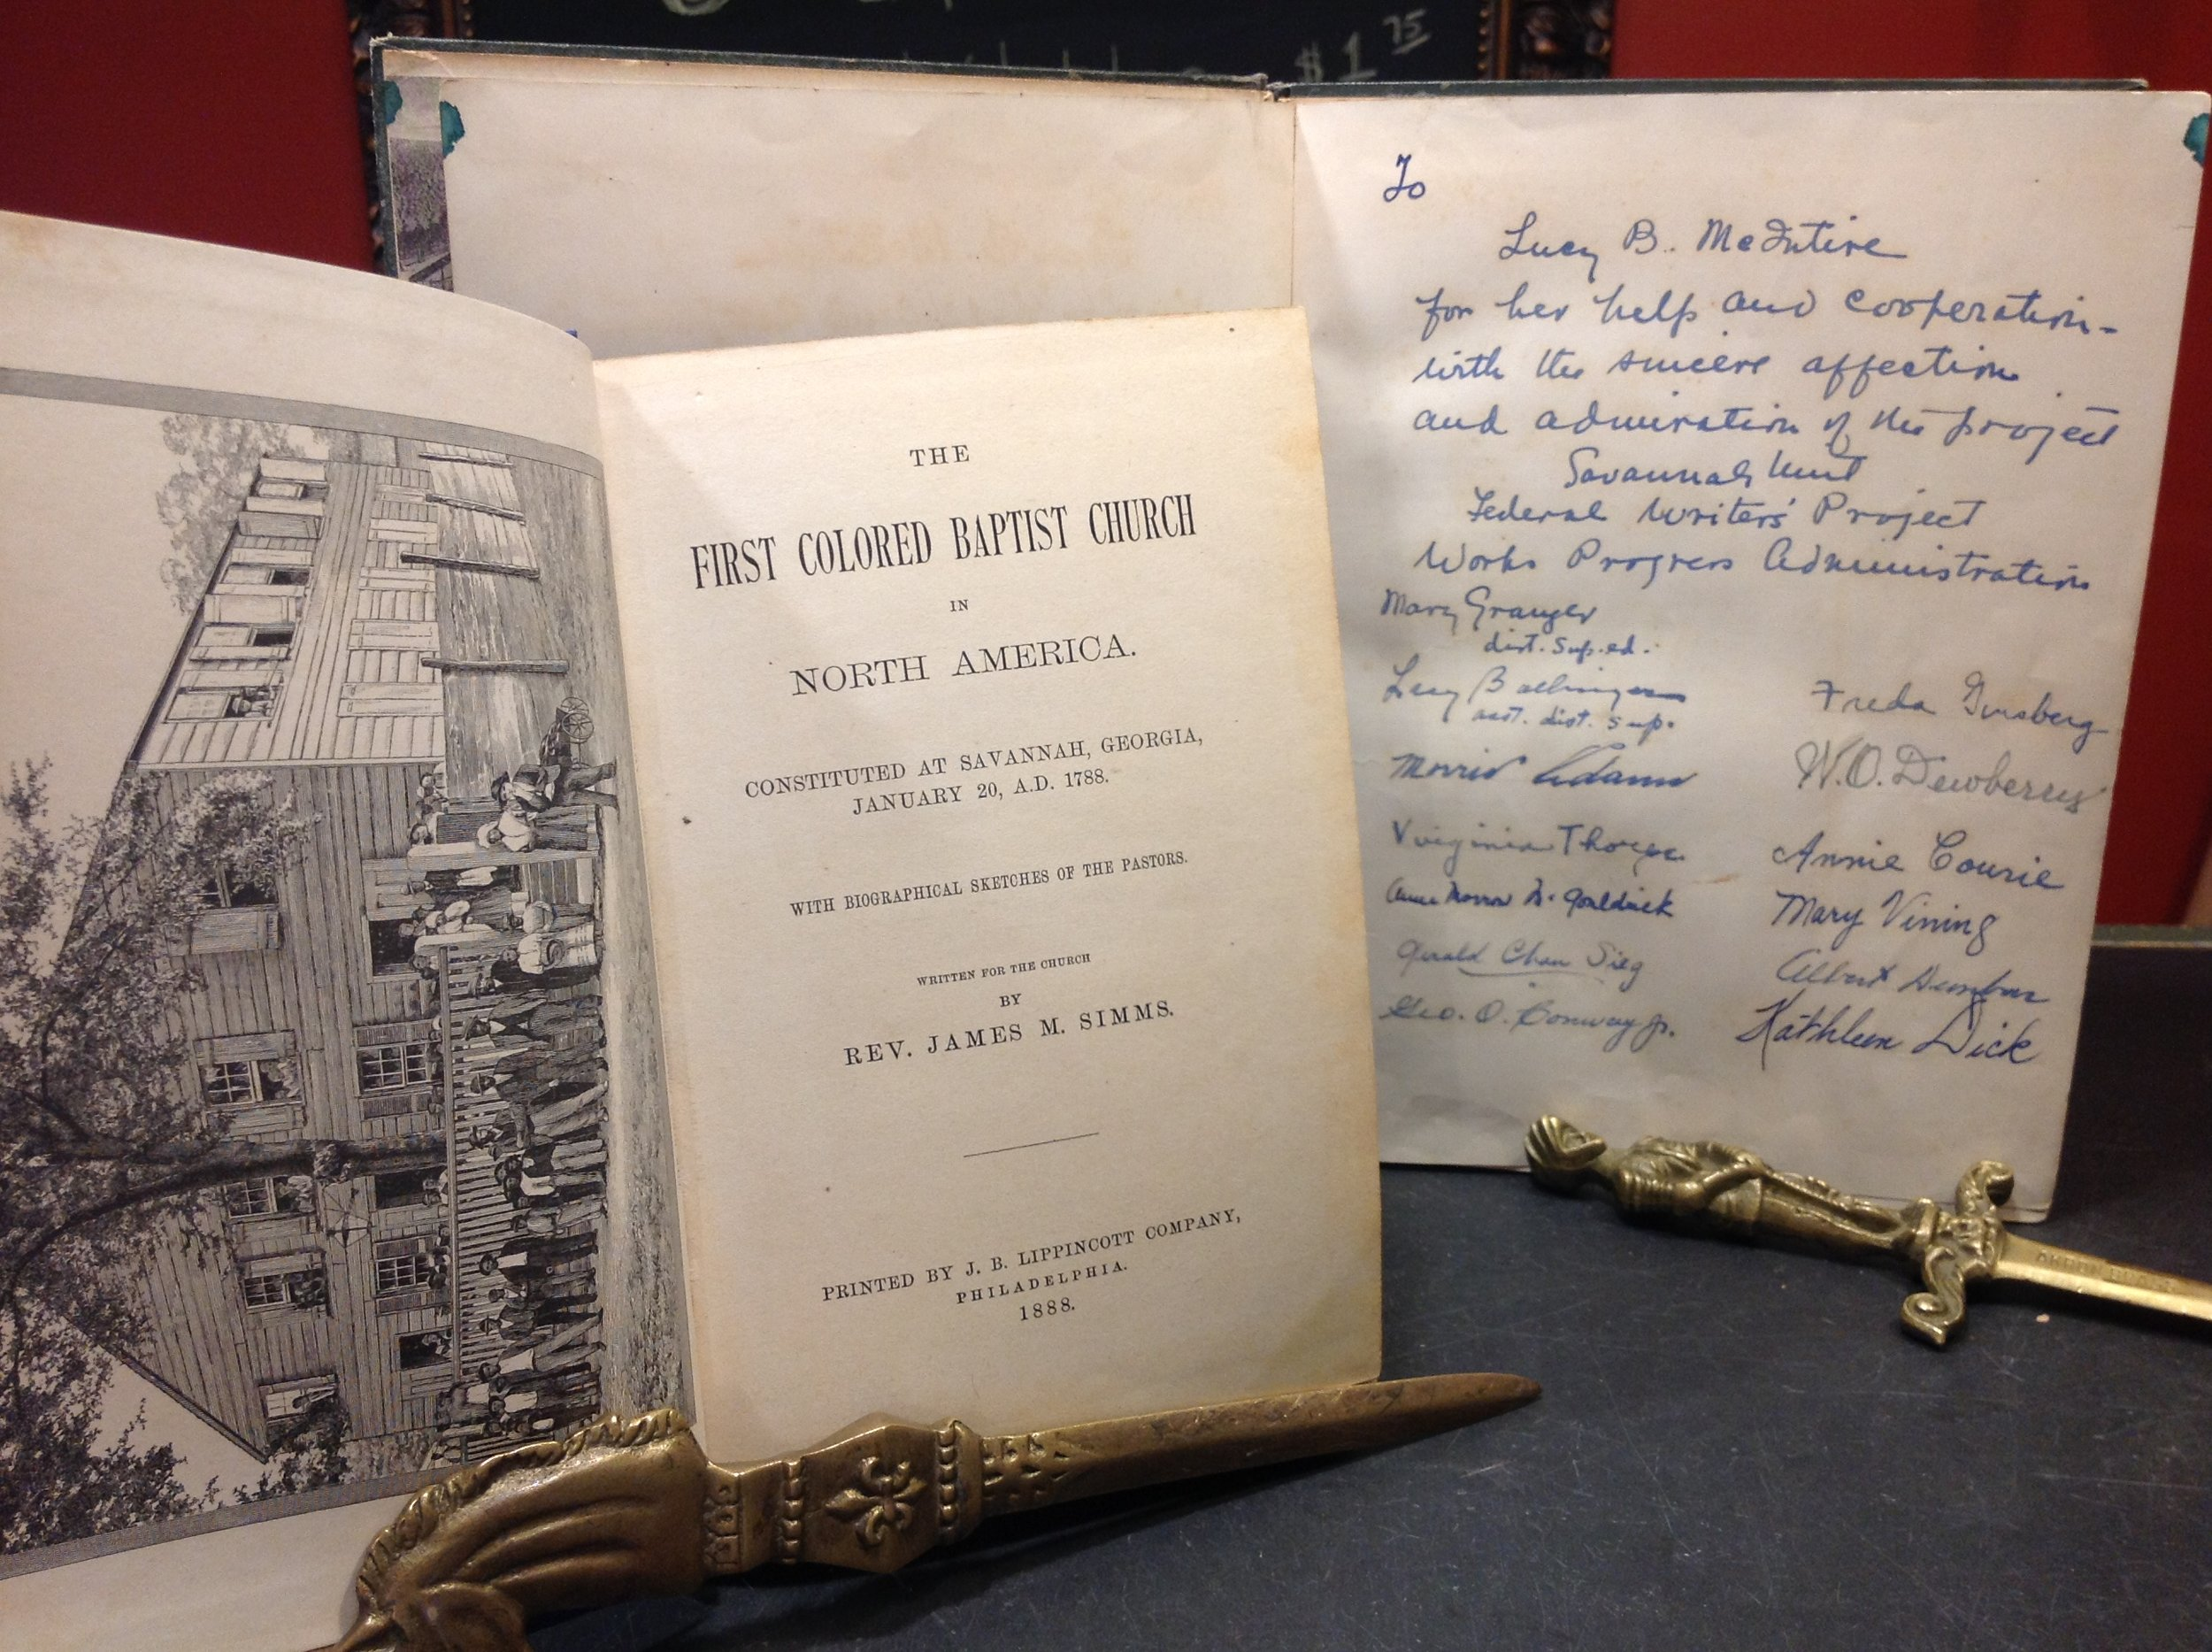 The First Colored Baptist Church in North America, Constituted at Savannah, Georgia&Savannah: American Guide Series - 1888 First Edition, J.B.Lippincott.1937 First Edition, compiled and written by Savannah Unit Federal Writers' Project in GA, Works Progress Administration; Signed by all the contributors that worked on the book.